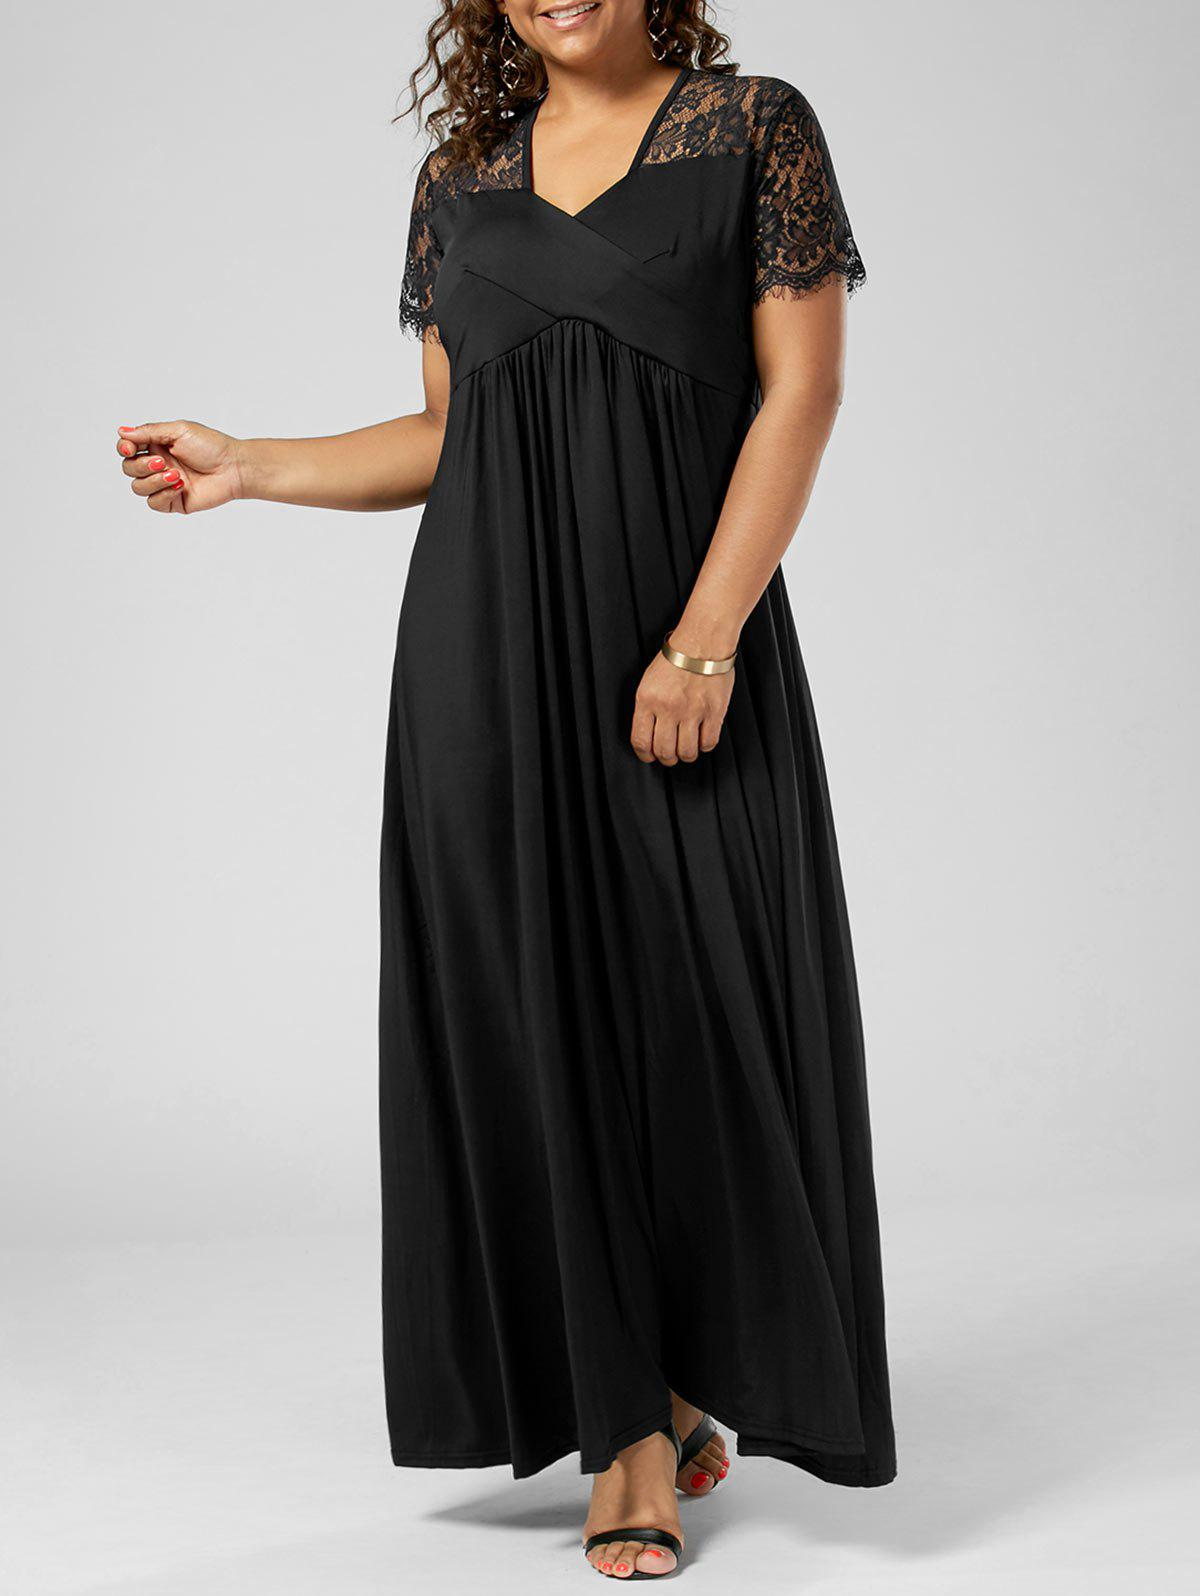 Plus Size Lace Insert Maxi Formal Dress with SleevesWOMEN<br><br>Size: 3XL; Color: BLACK; Style: Brief; Material: Polyester; Silhouette: A-Line; Dresses Length: Floor-Length; Neckline: V-Neck; Sleeve Length: Short Sleeves; Pattern Type: Solid Color; With Belt: No; Season: Summer; Weight: 0.6000kg; Package Contents: 1 x Dress;